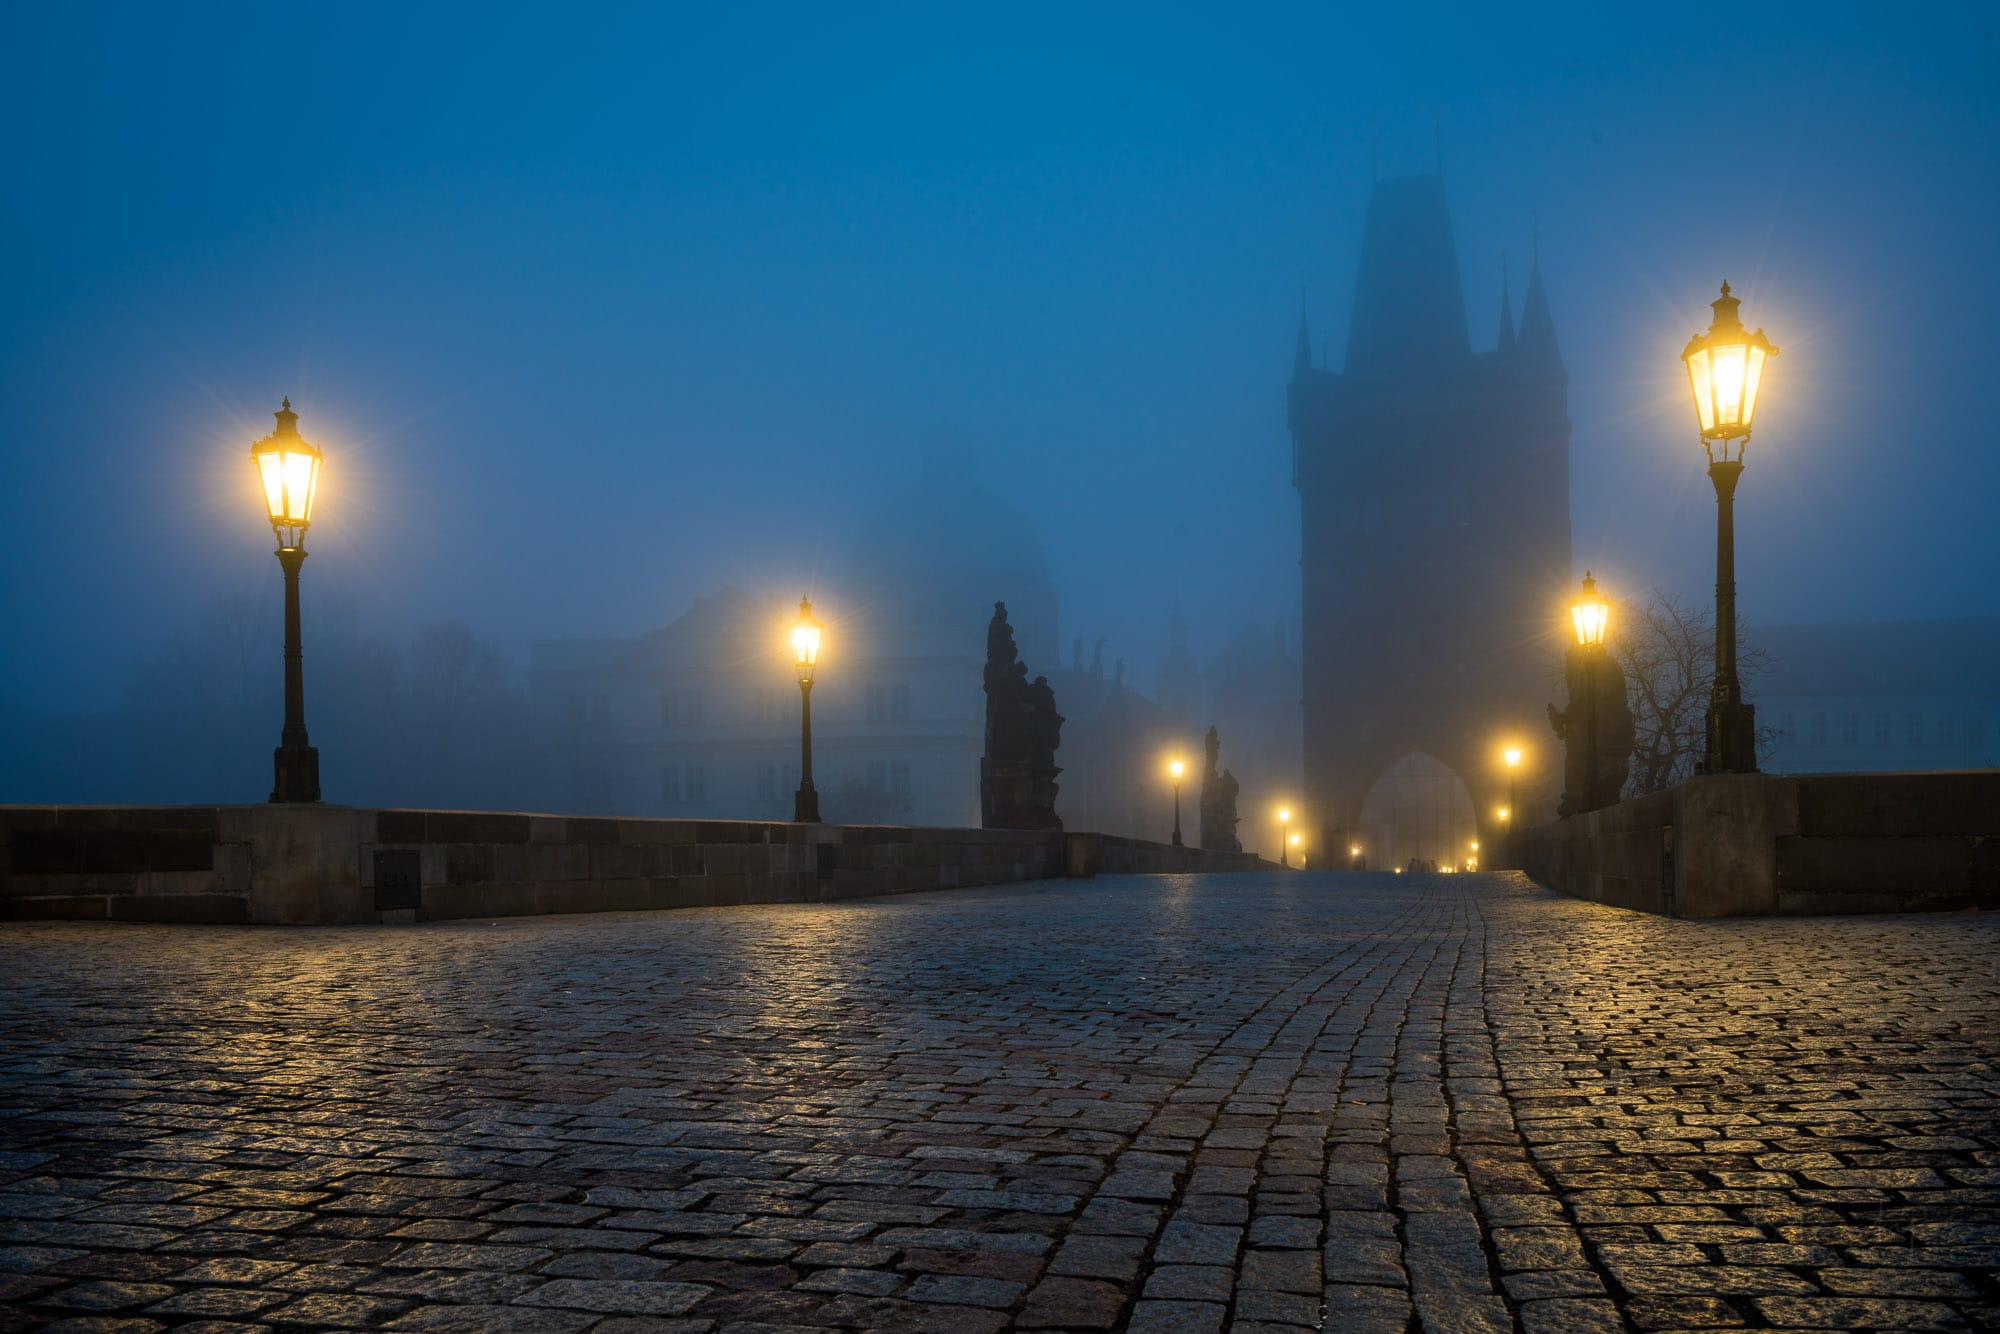 Foggy morning at Charles bridge